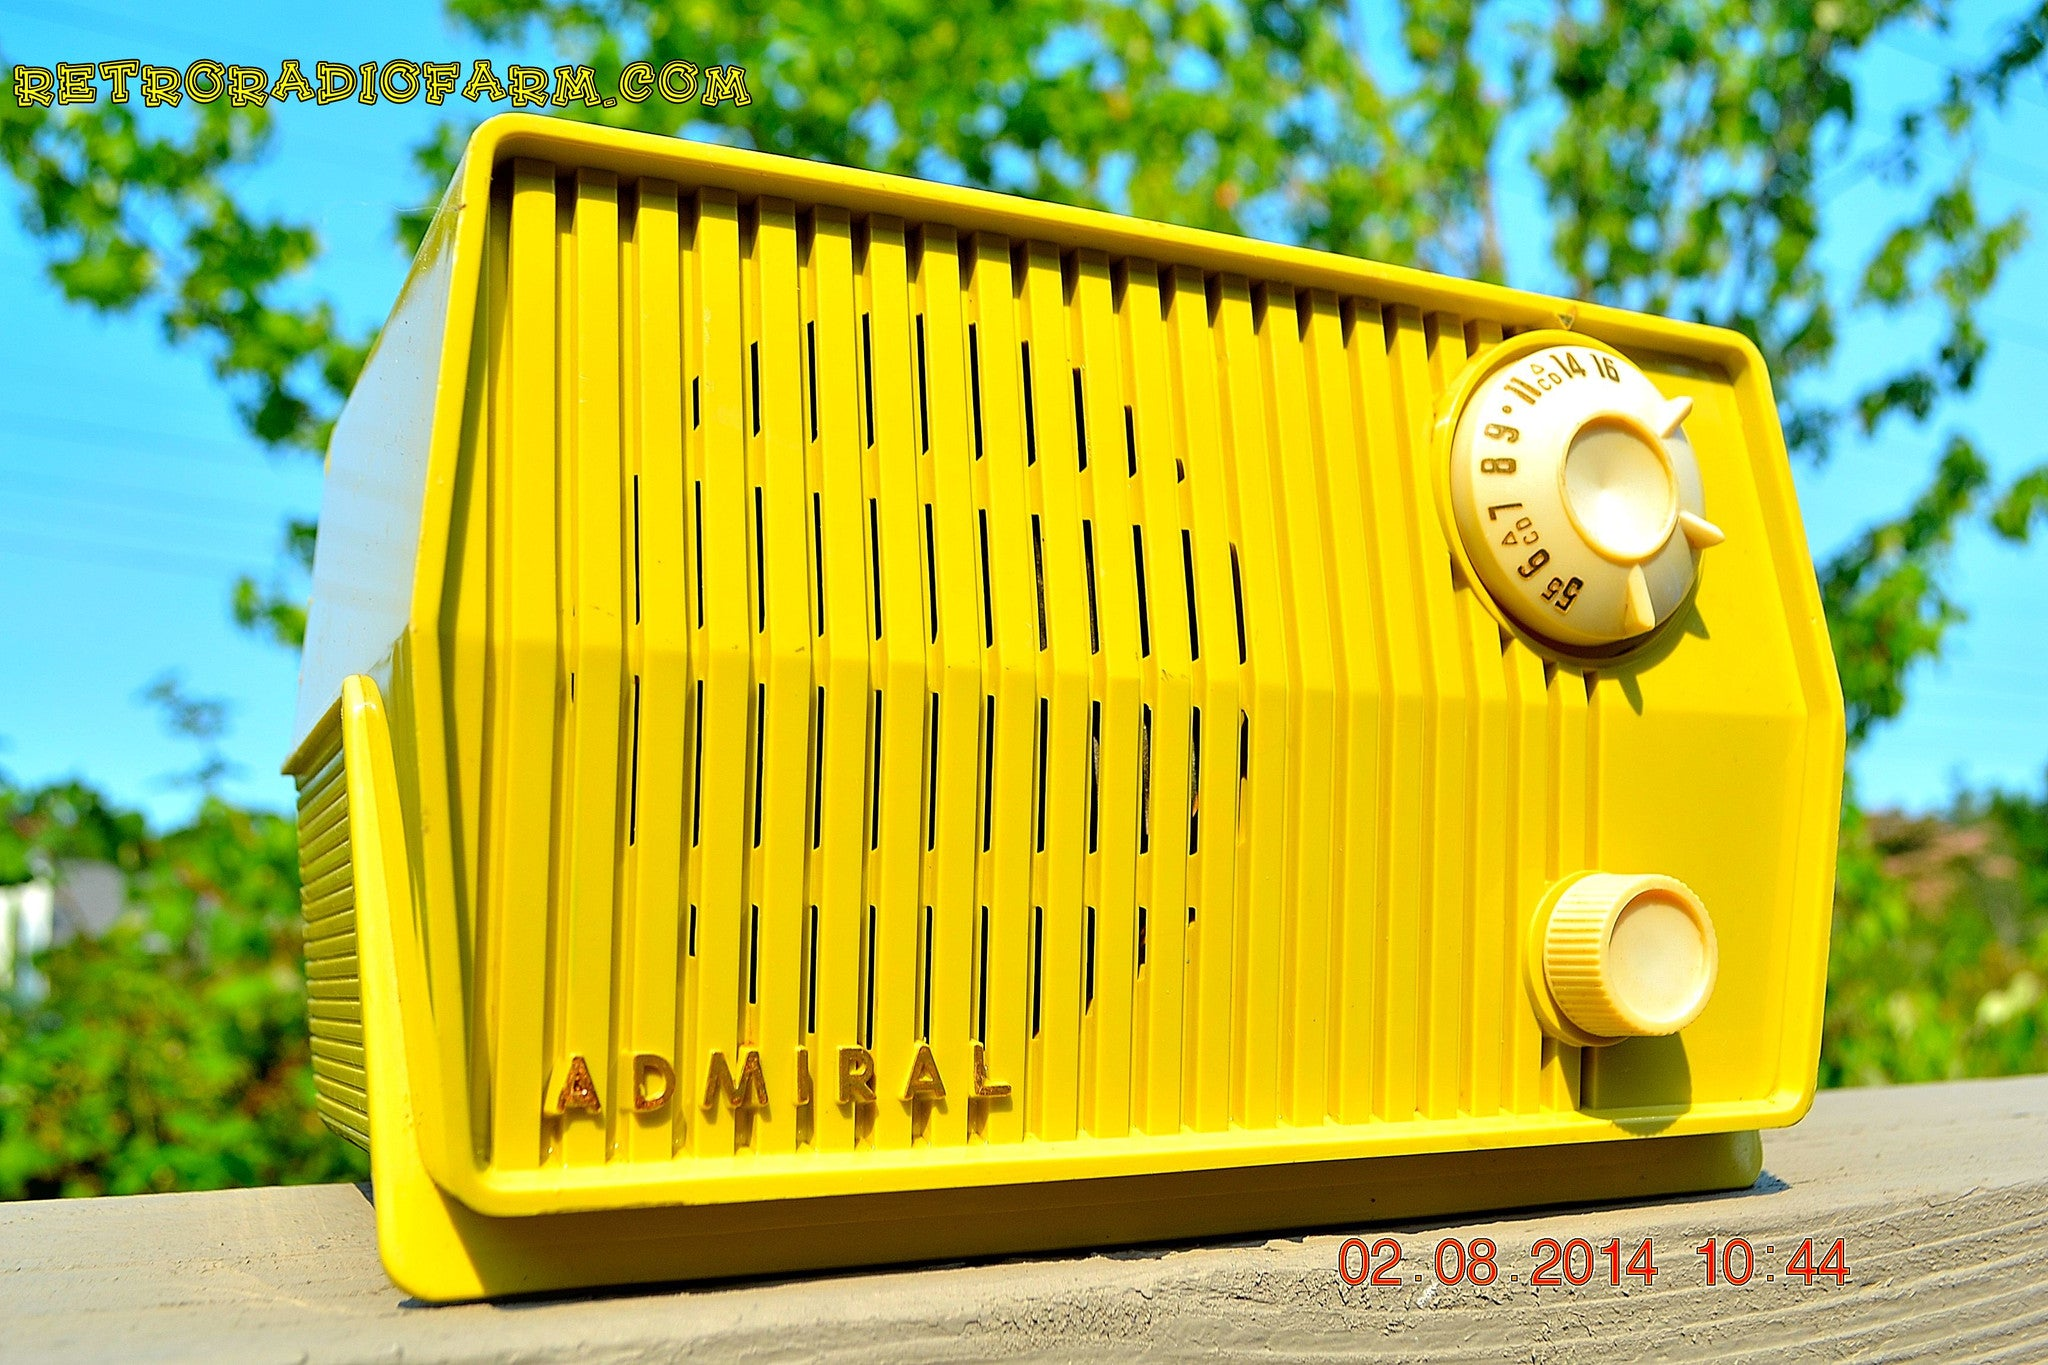 SOLD! - Sept 7, 2014 - BUTTER YELLOW Retro Jetsons Vintage 1959 Admiral 4L26A Tube AM Radio WORKS! , Vintage Radio - Admiral, Retro Radio Farm  - 1